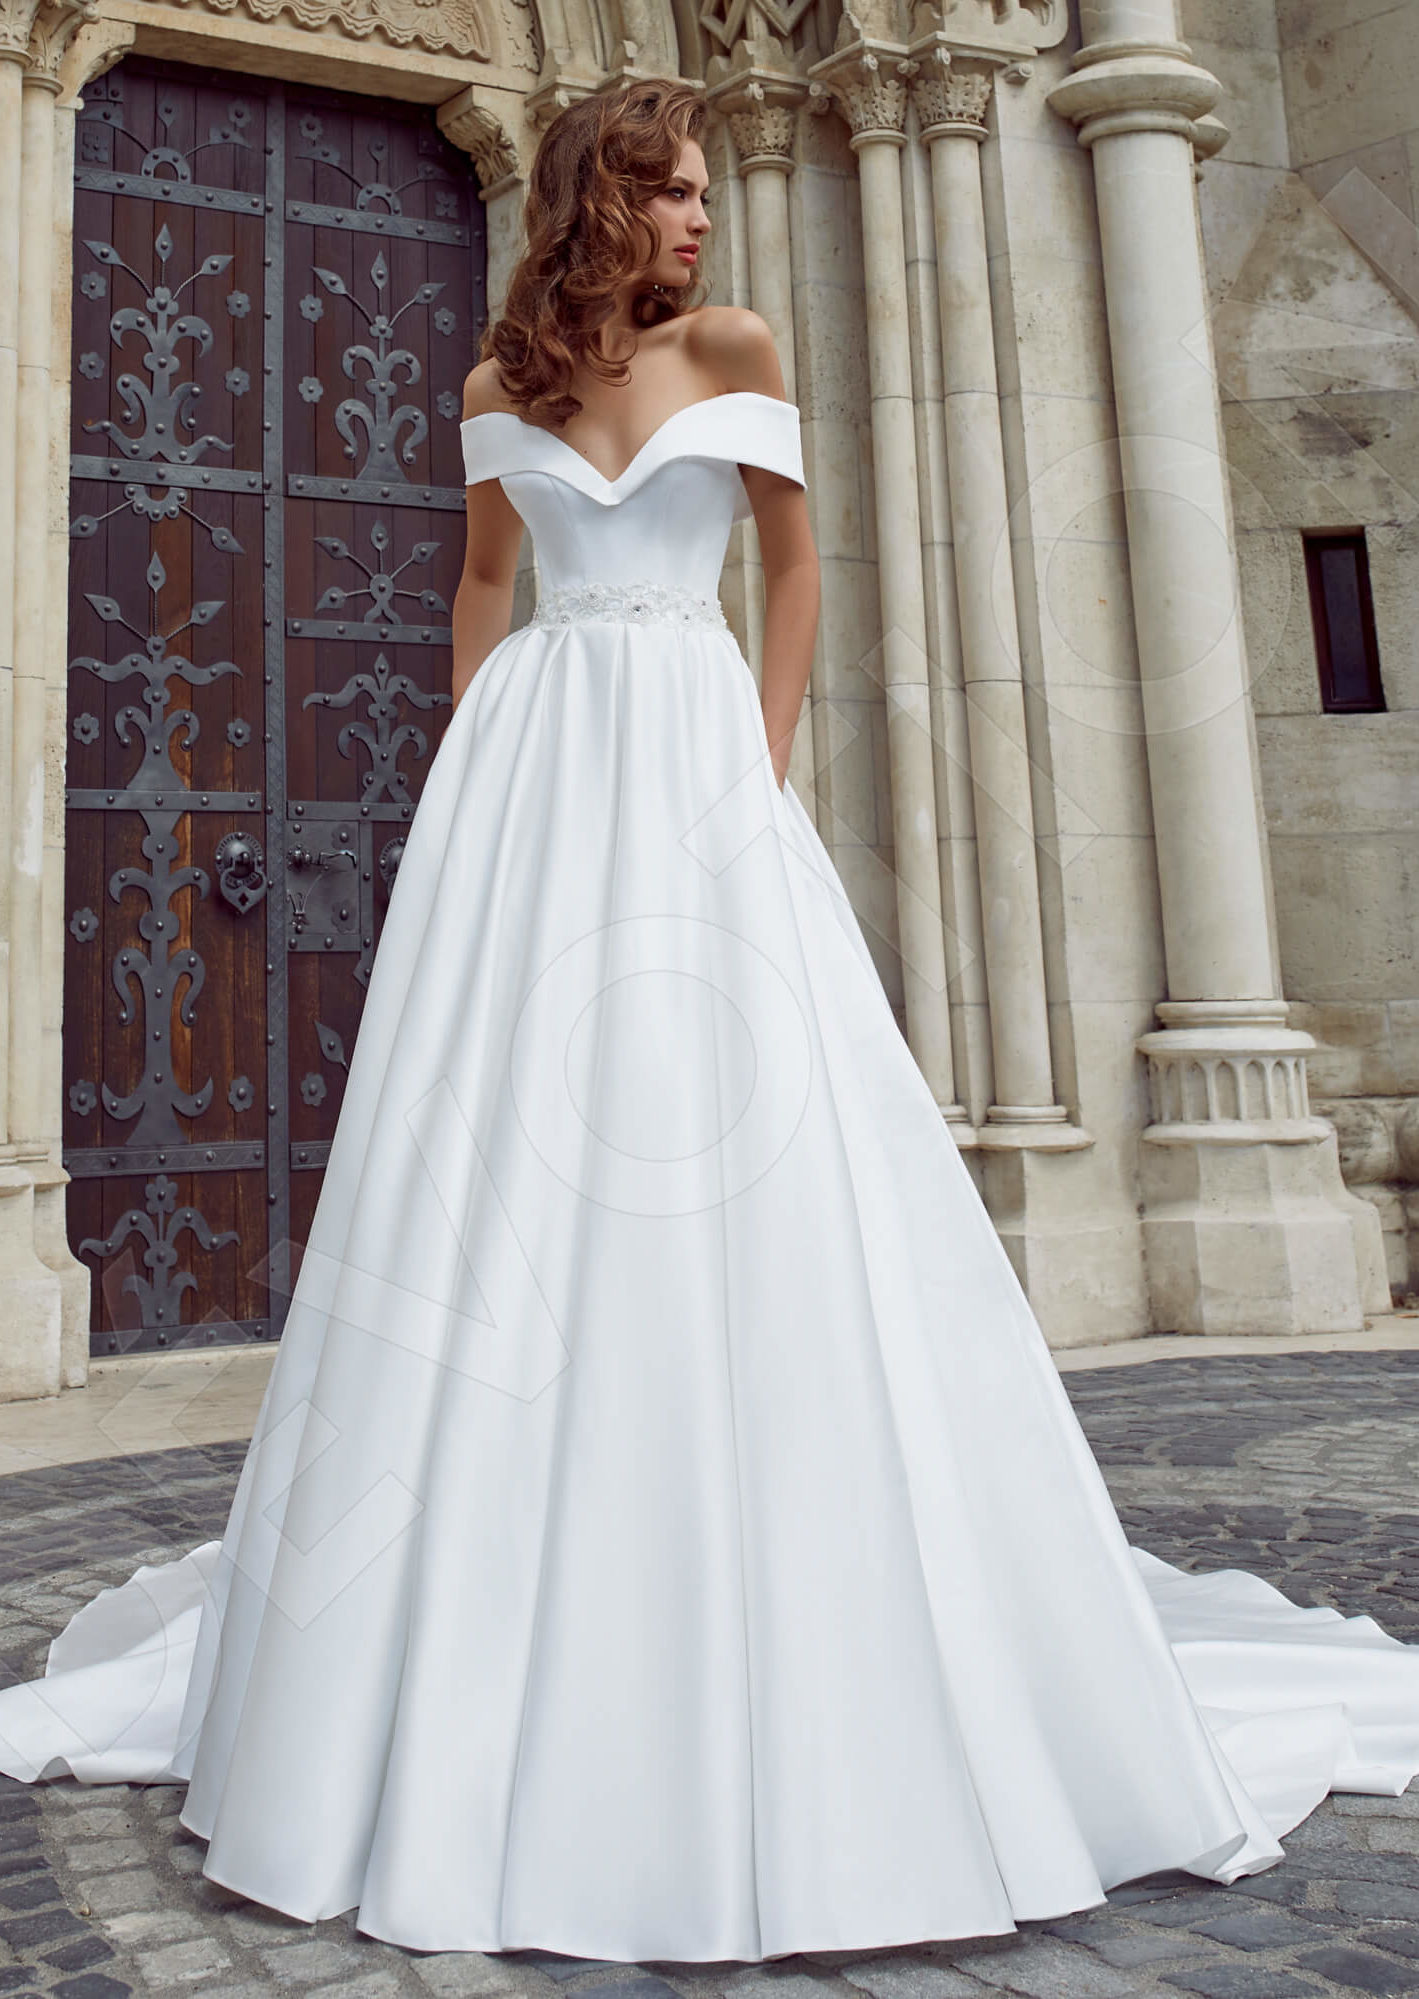 How to choose a wedding dress: 5 tips